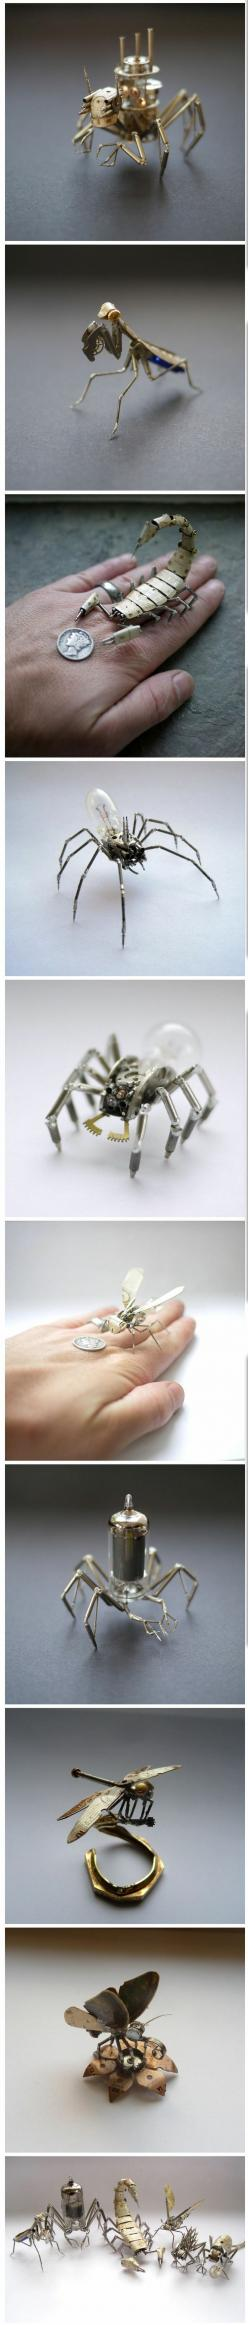 Tiny Mechanical Insects Made of Watch Parts: Mechanical Insects, Tiny Mechanical, Steam Punk, Steampunk, Watches, Design